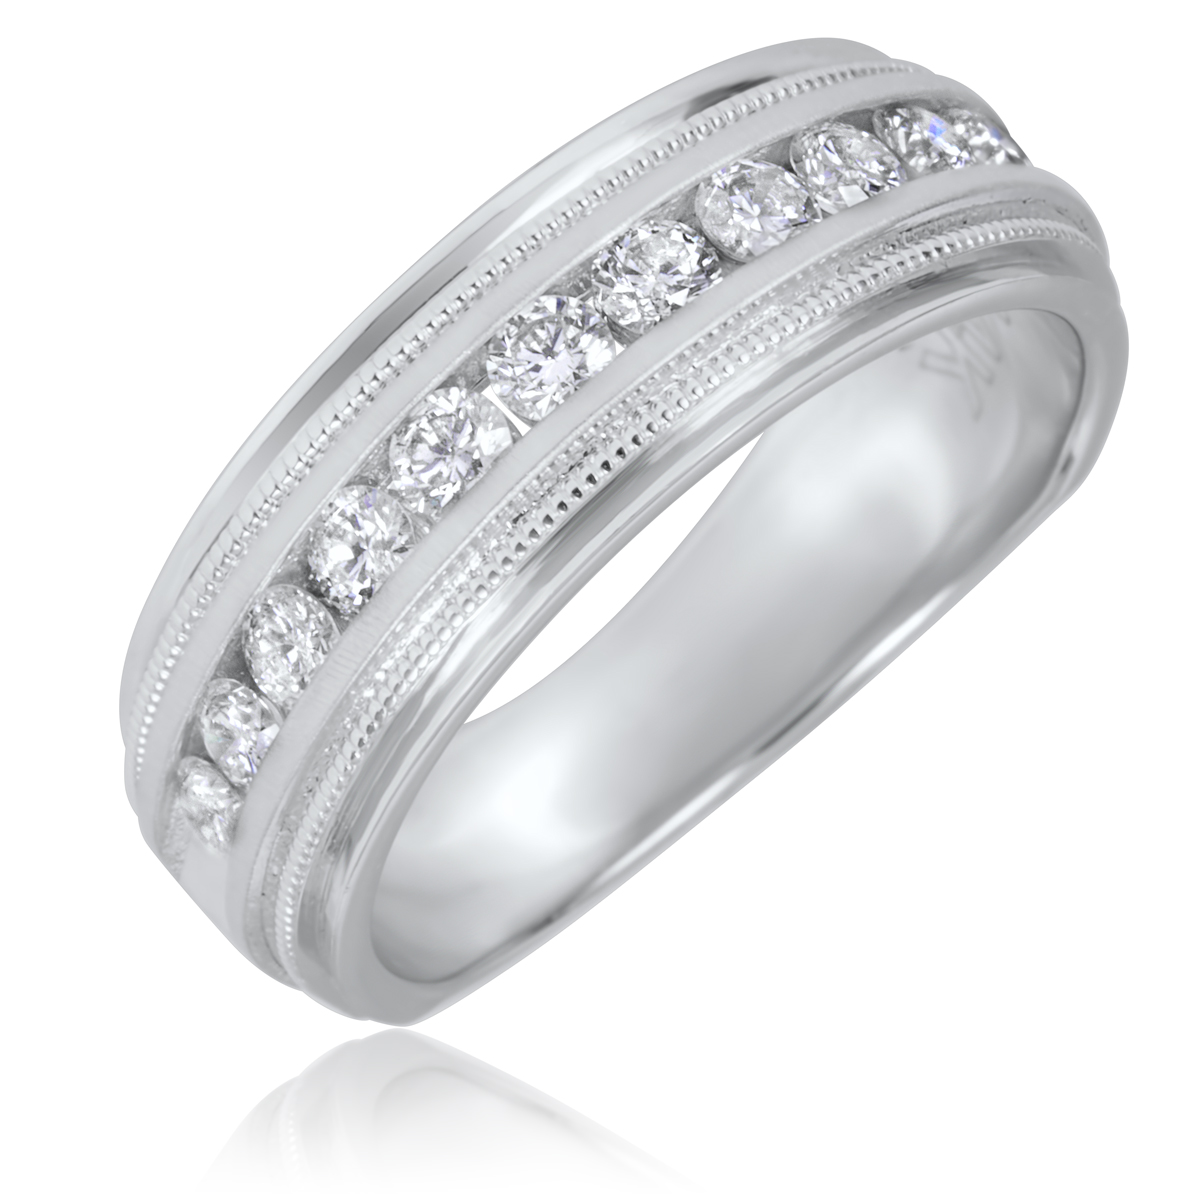 1 2 CT TW Round Cut Diamond Mens Wedding Band 14K White Gold